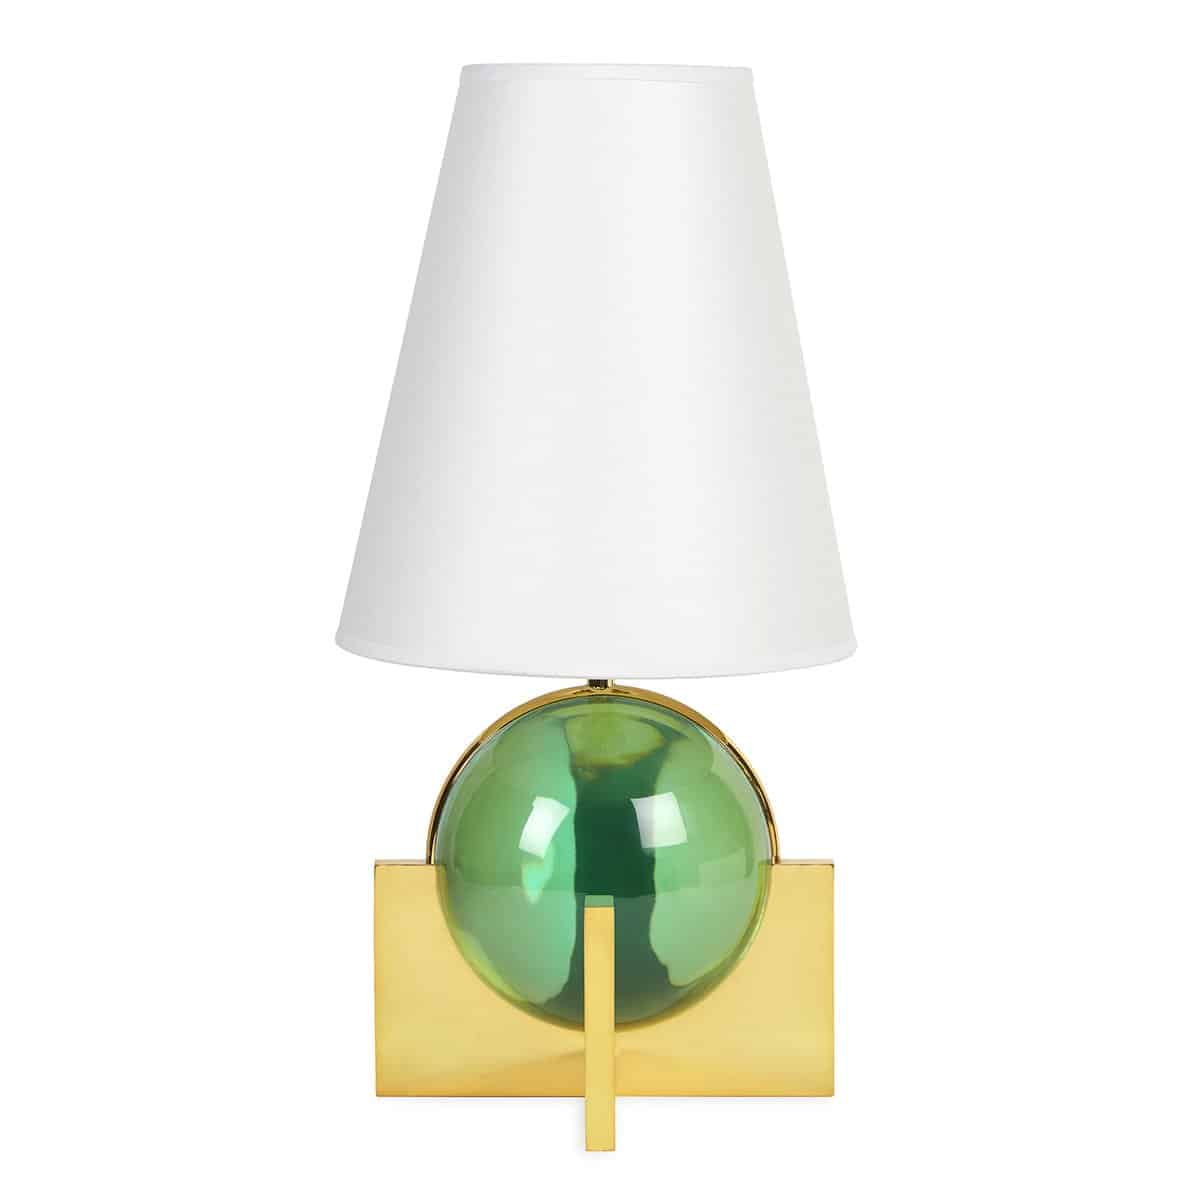 Globo green lights, jonathan adler